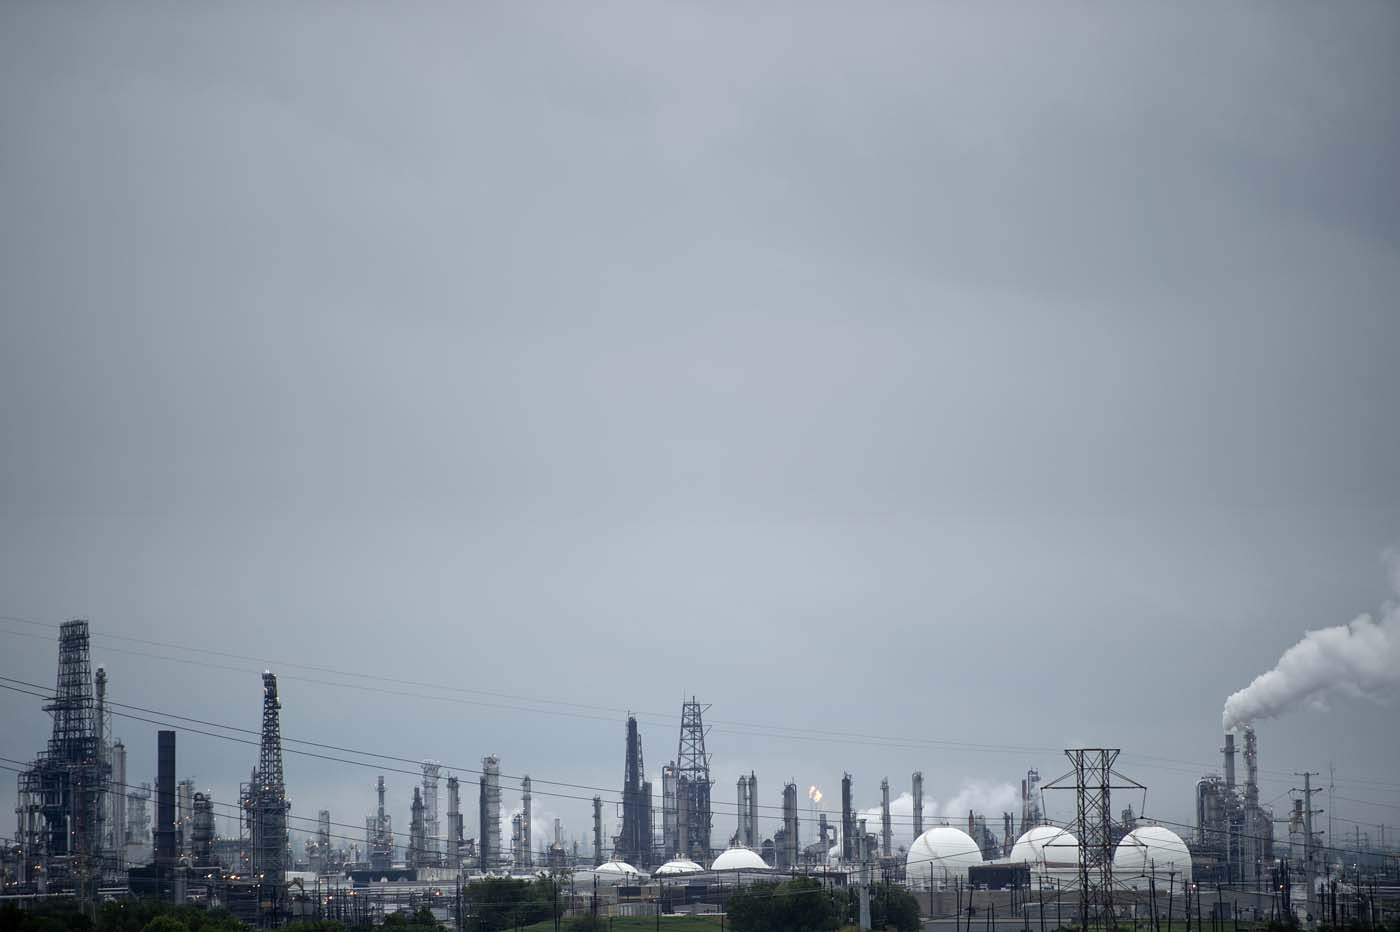 Refineries are seen in the aftermath of Hurricane Harvey August 27, 2017 in Houston, Texas. Hurricane Harvey left a trail of devastation after the most powerful storm to hit the US mainland in over a decade slammed into Texas, destroying homes, severing power supplies and forcing tens of thousands of residents to flee. / AFP PHOTO / Brendan Smialowski